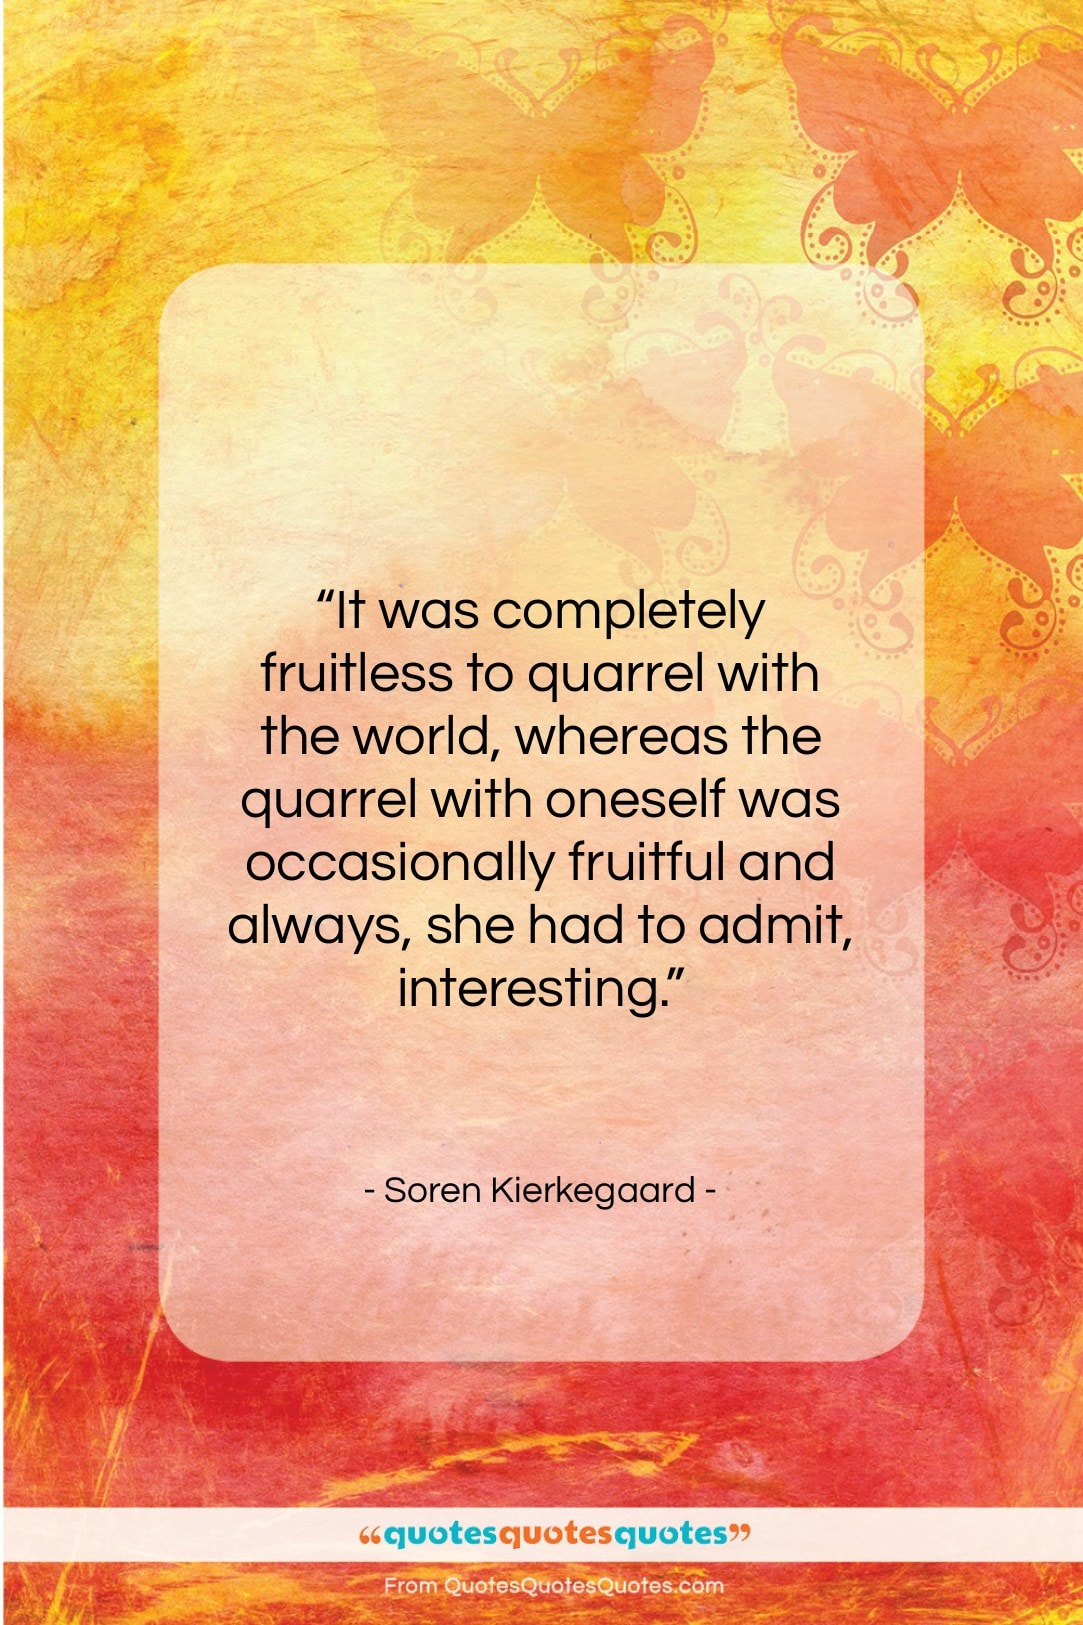 """Soren Kierkegaard quote: """"It was completely fruitless to quarrel with…""""- at QuotesQuotesQuotes.com"""